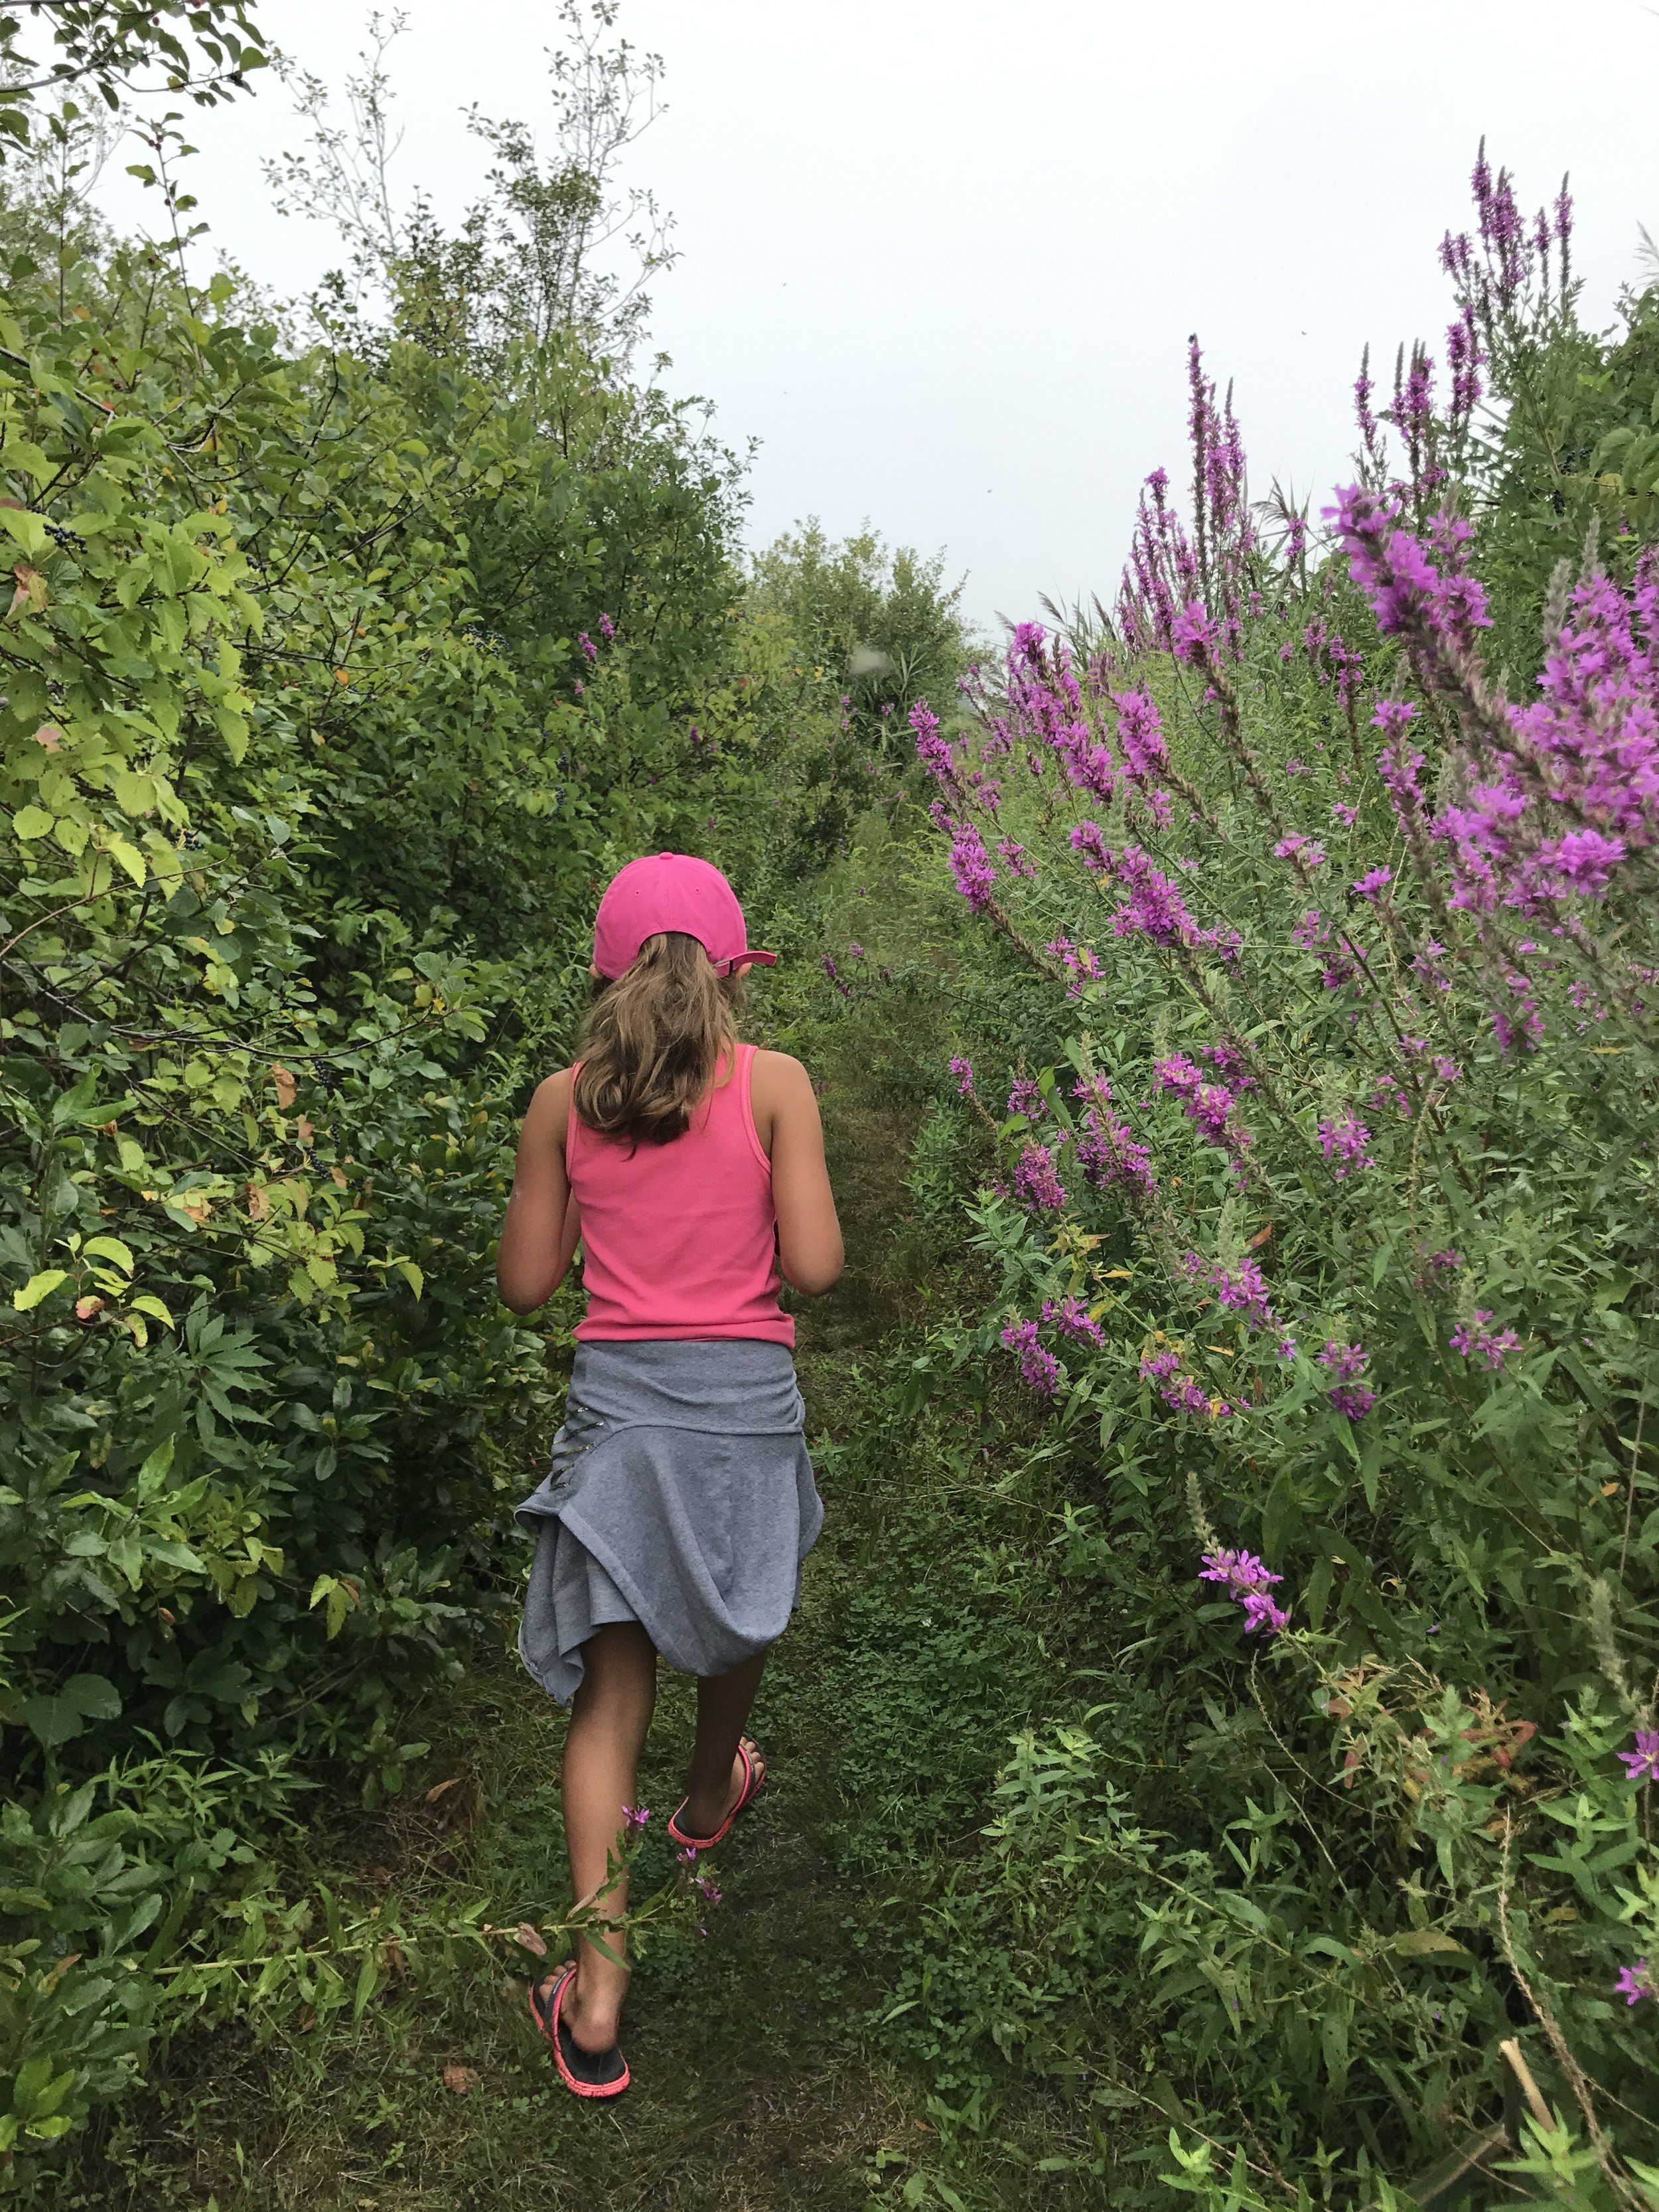 Walking the path amongst the flowers.